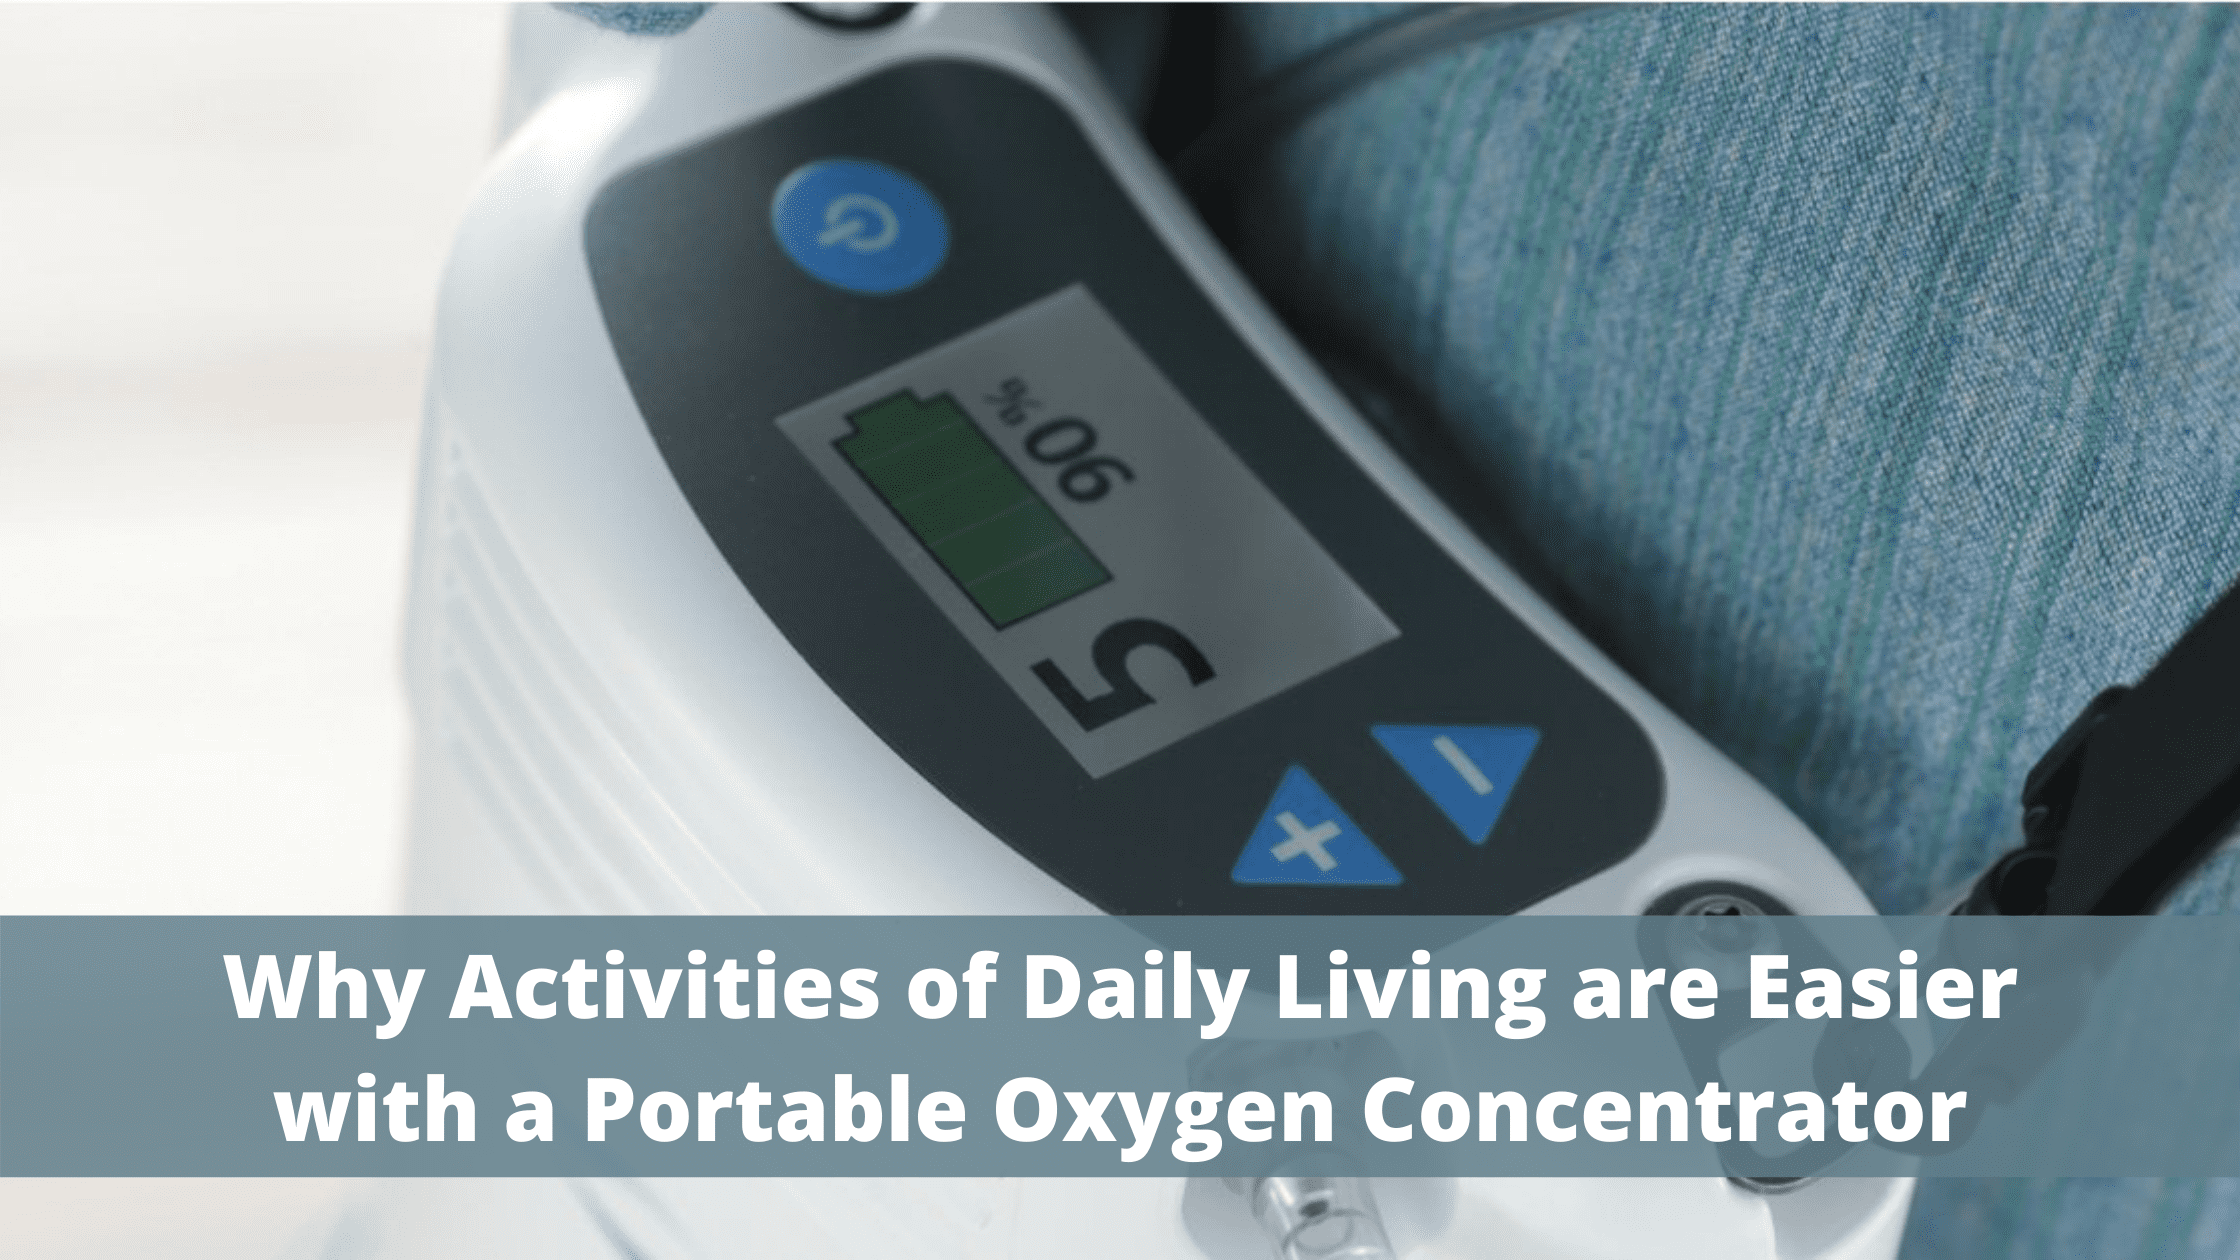 Why Activities of Daily Living are Easier with a Portable Oxygen Concentrator